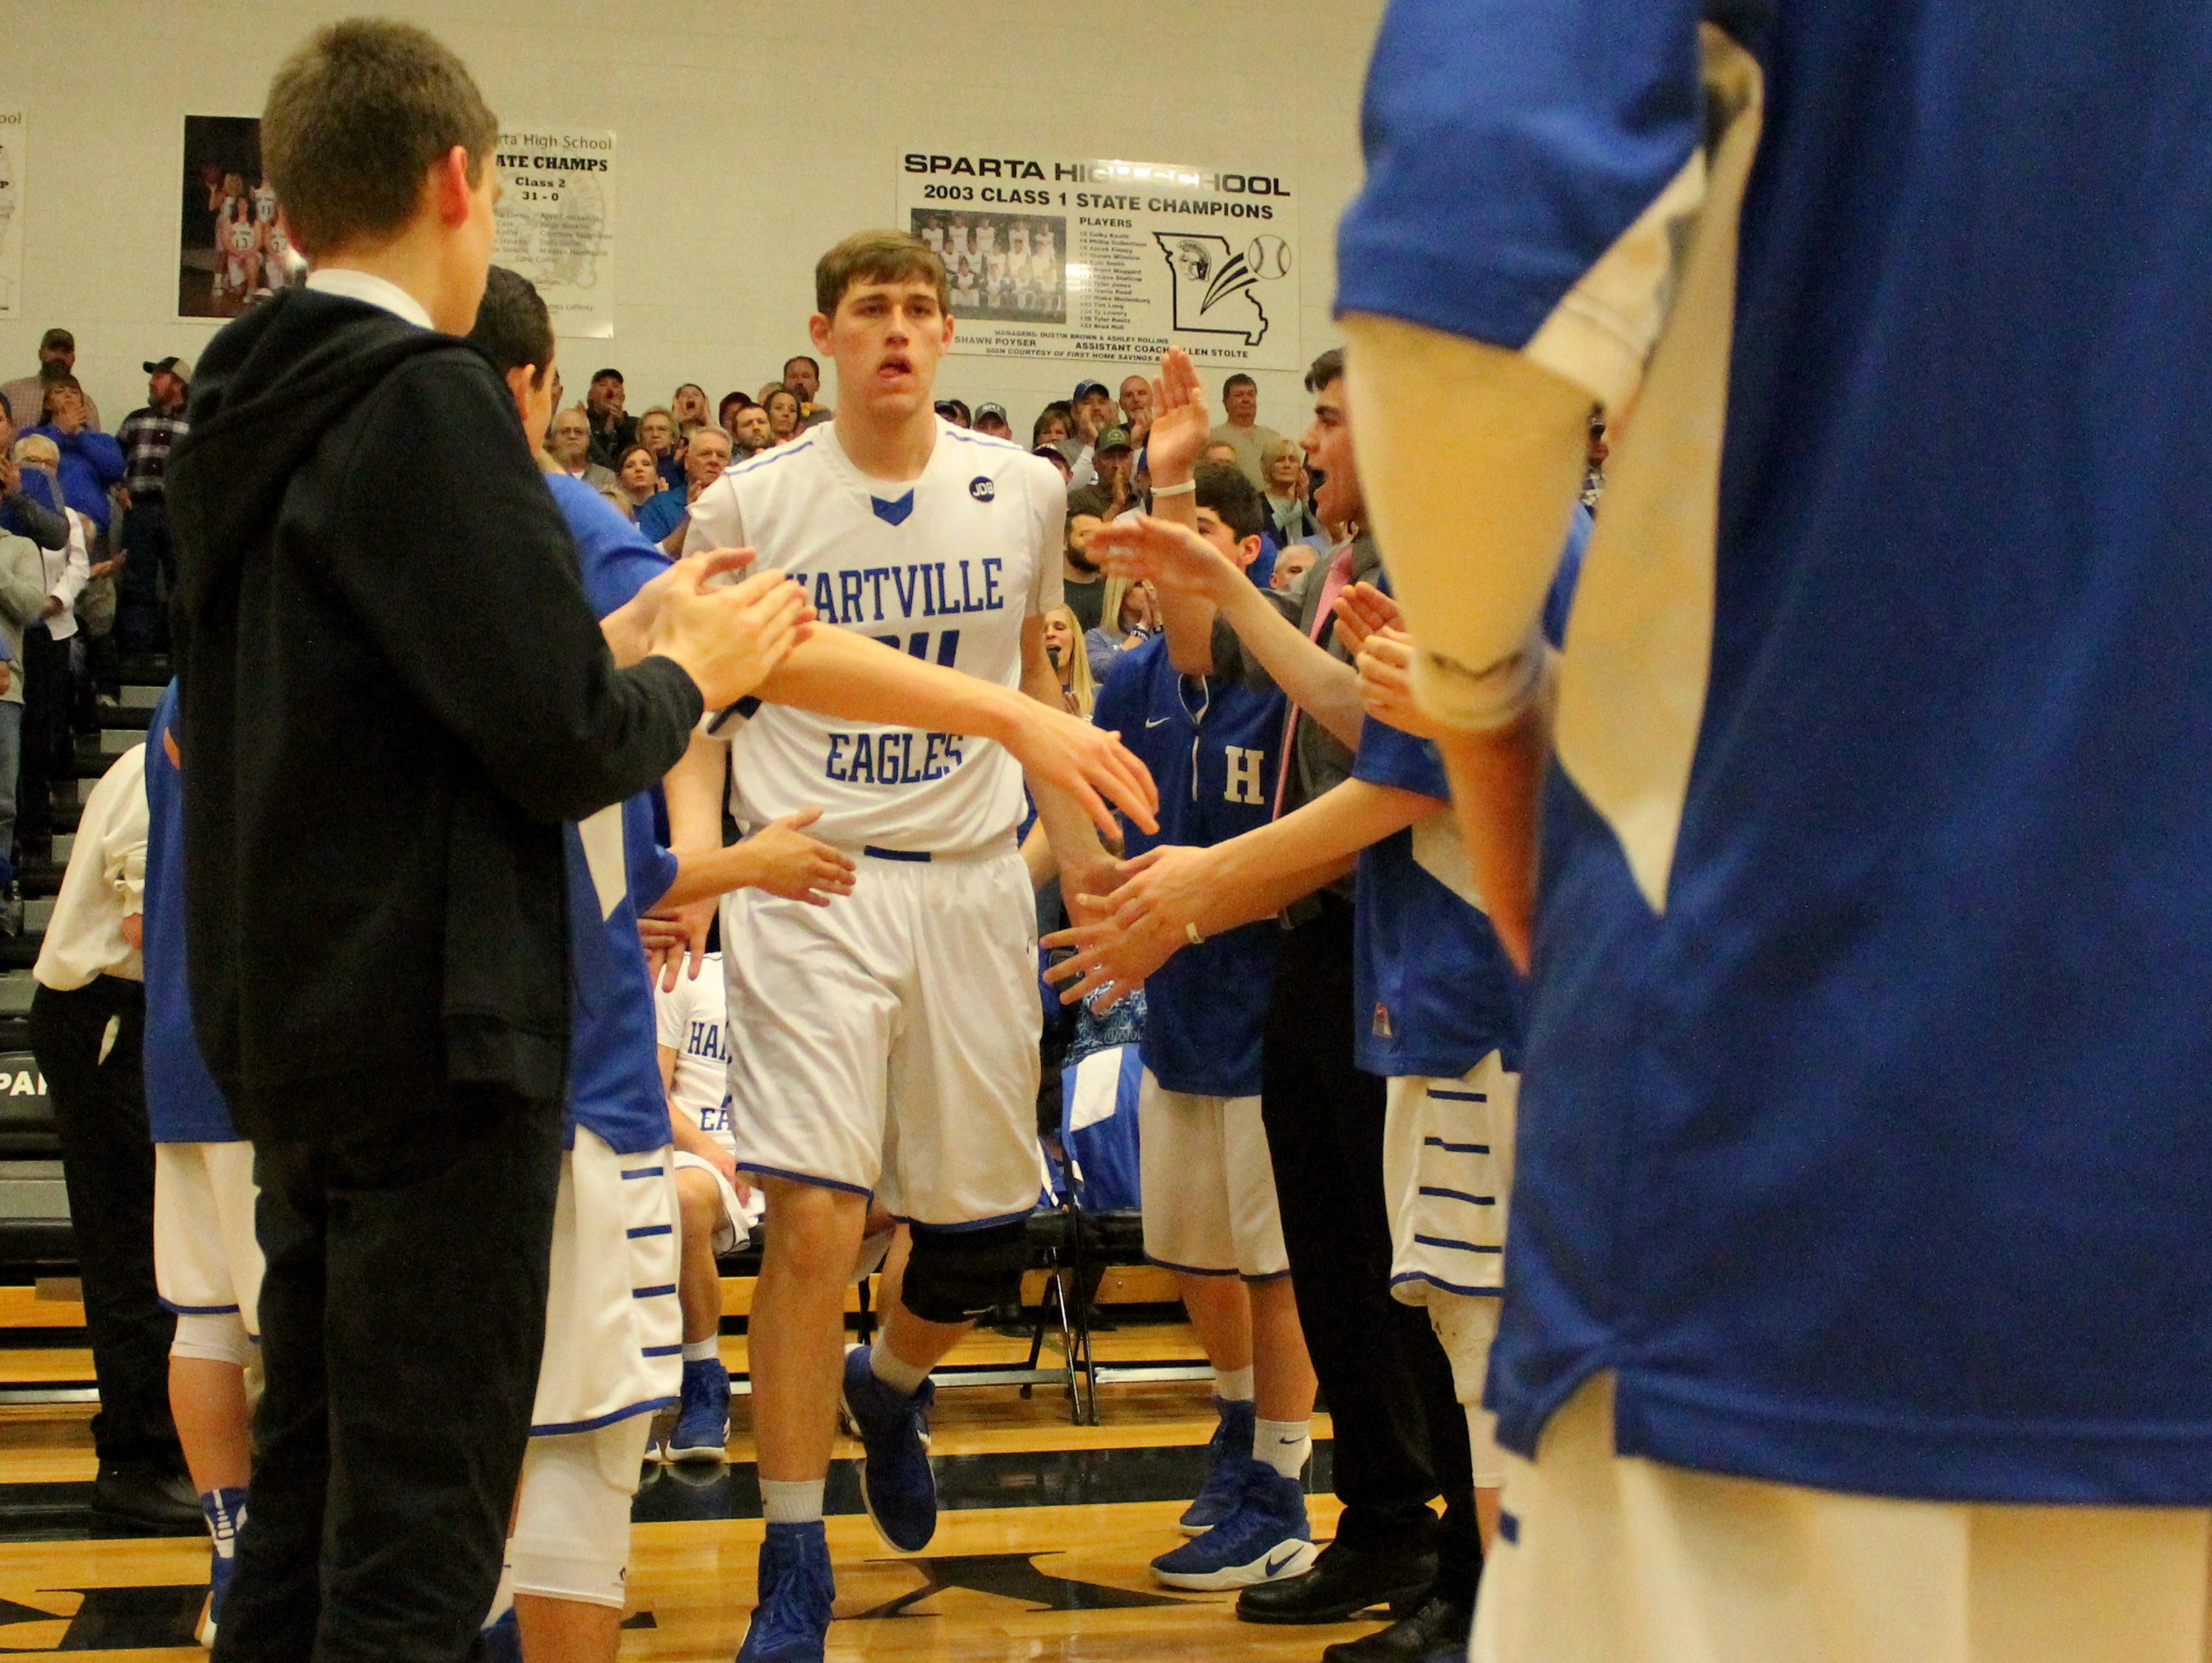 Hartville junior Cody Kelley (34) scored 14 points in a 53-42 win over Mansfield in the 2017 Class 2 District 4 championship game at Sparta High School.